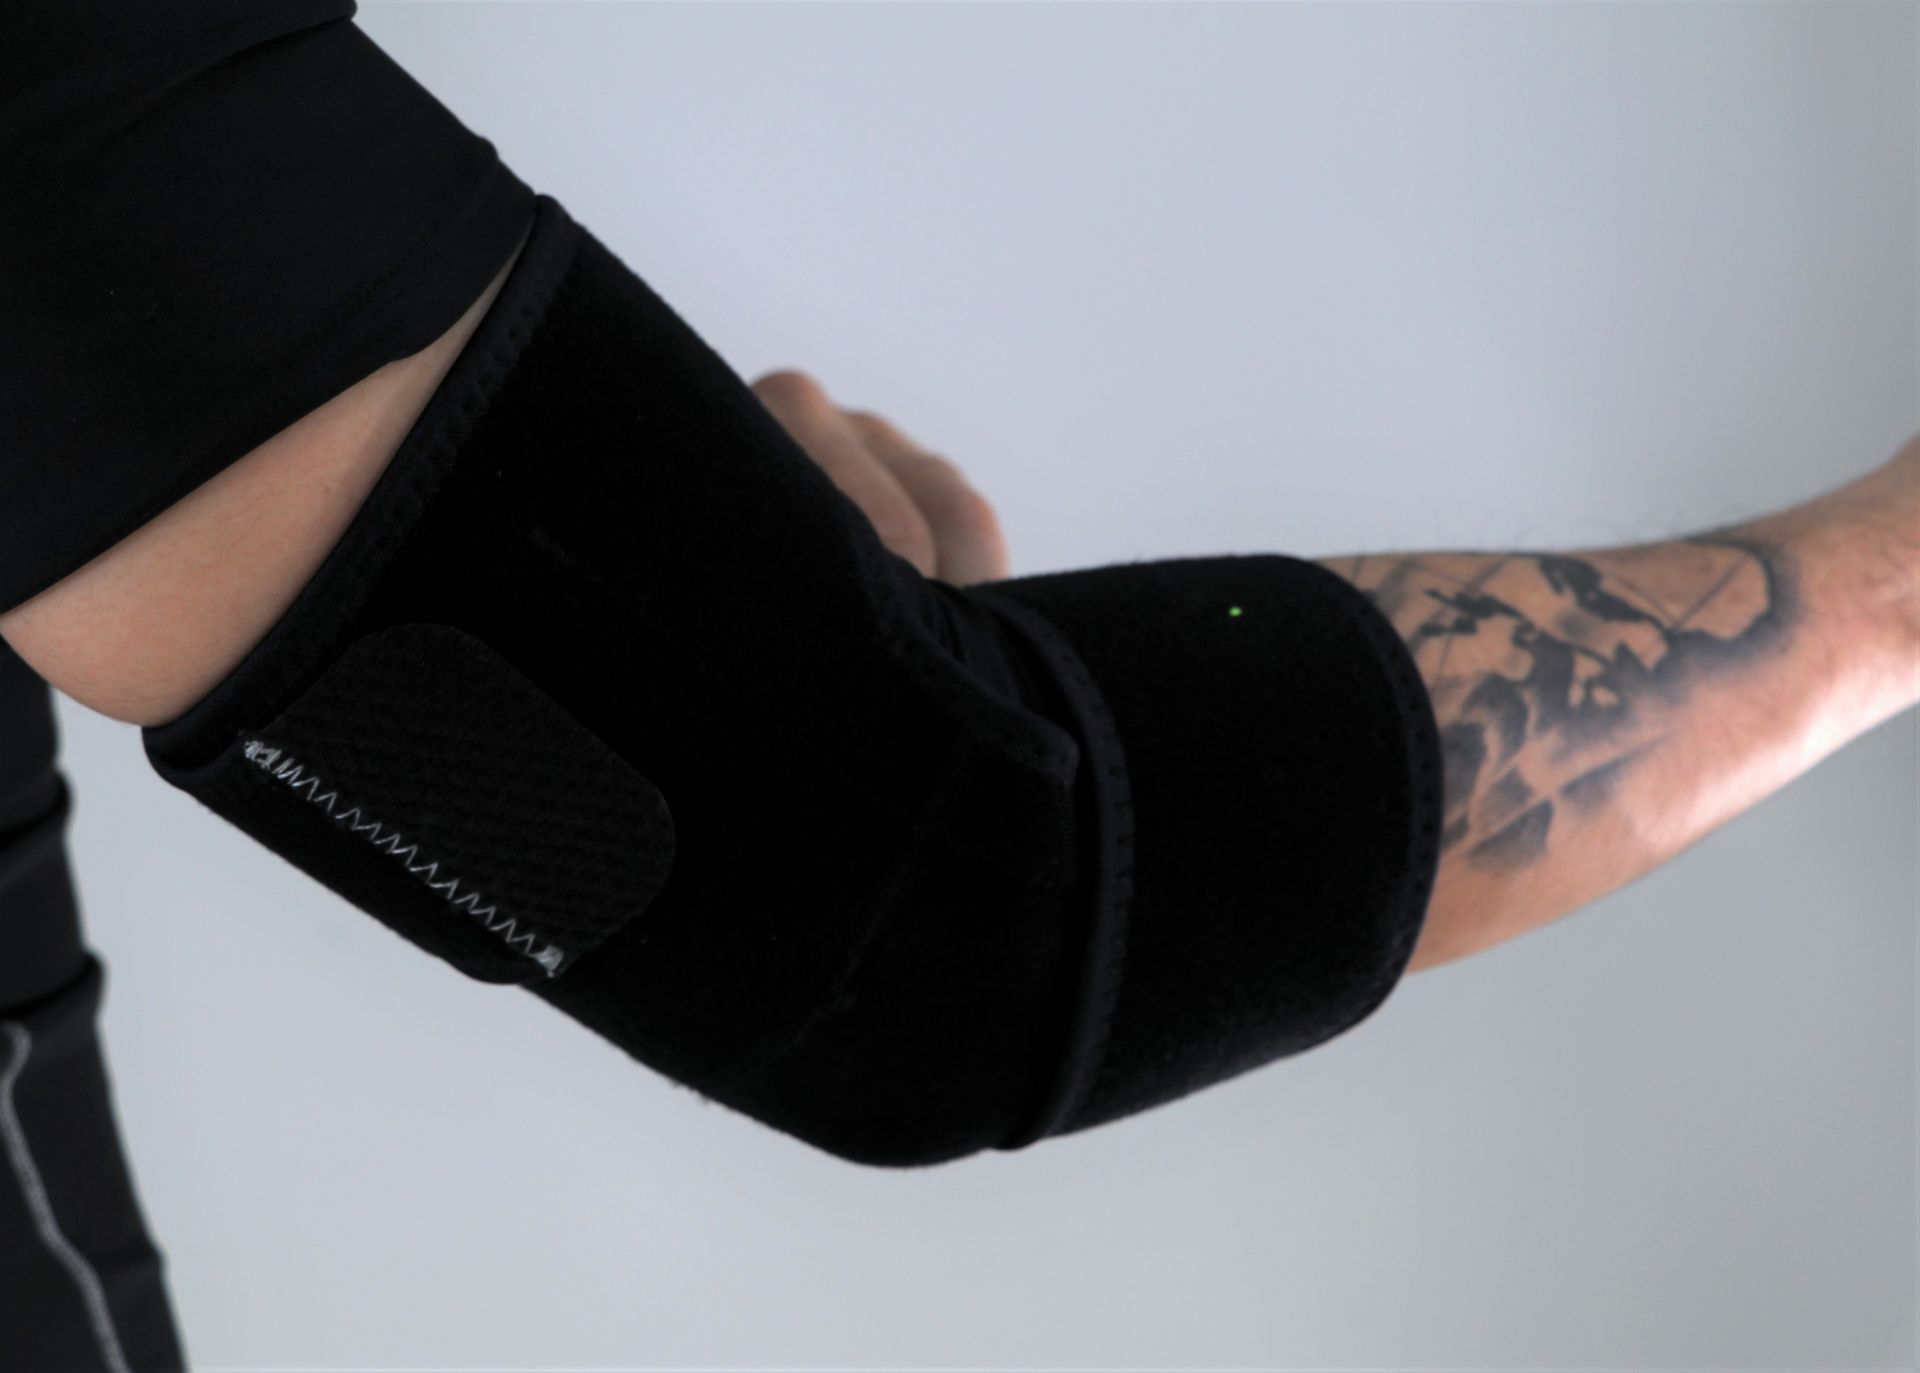 Neoprene Elbow Brace